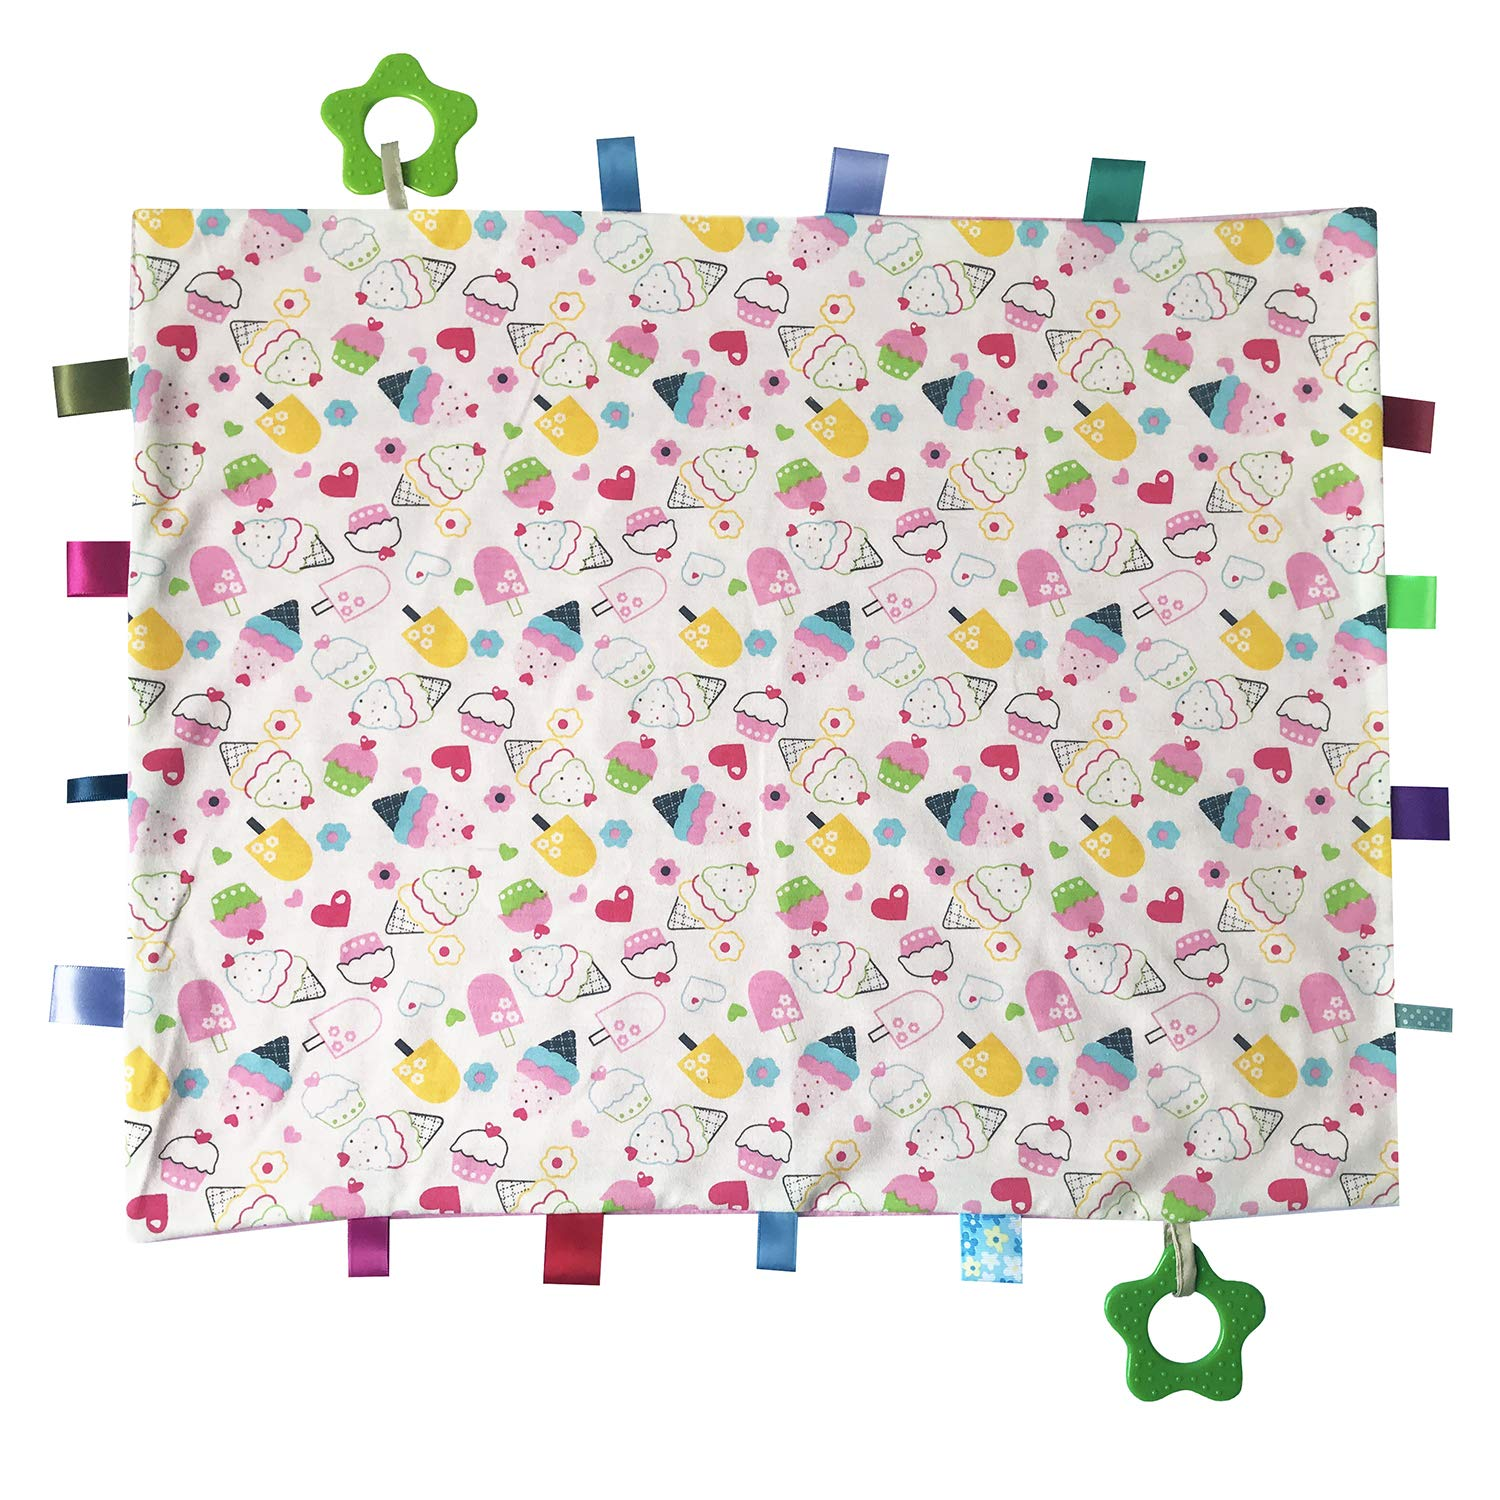 G-Tree Big Size Tag Blanket for 100% quality warranty! Taggy Blan Security Popular product -Soft Babies